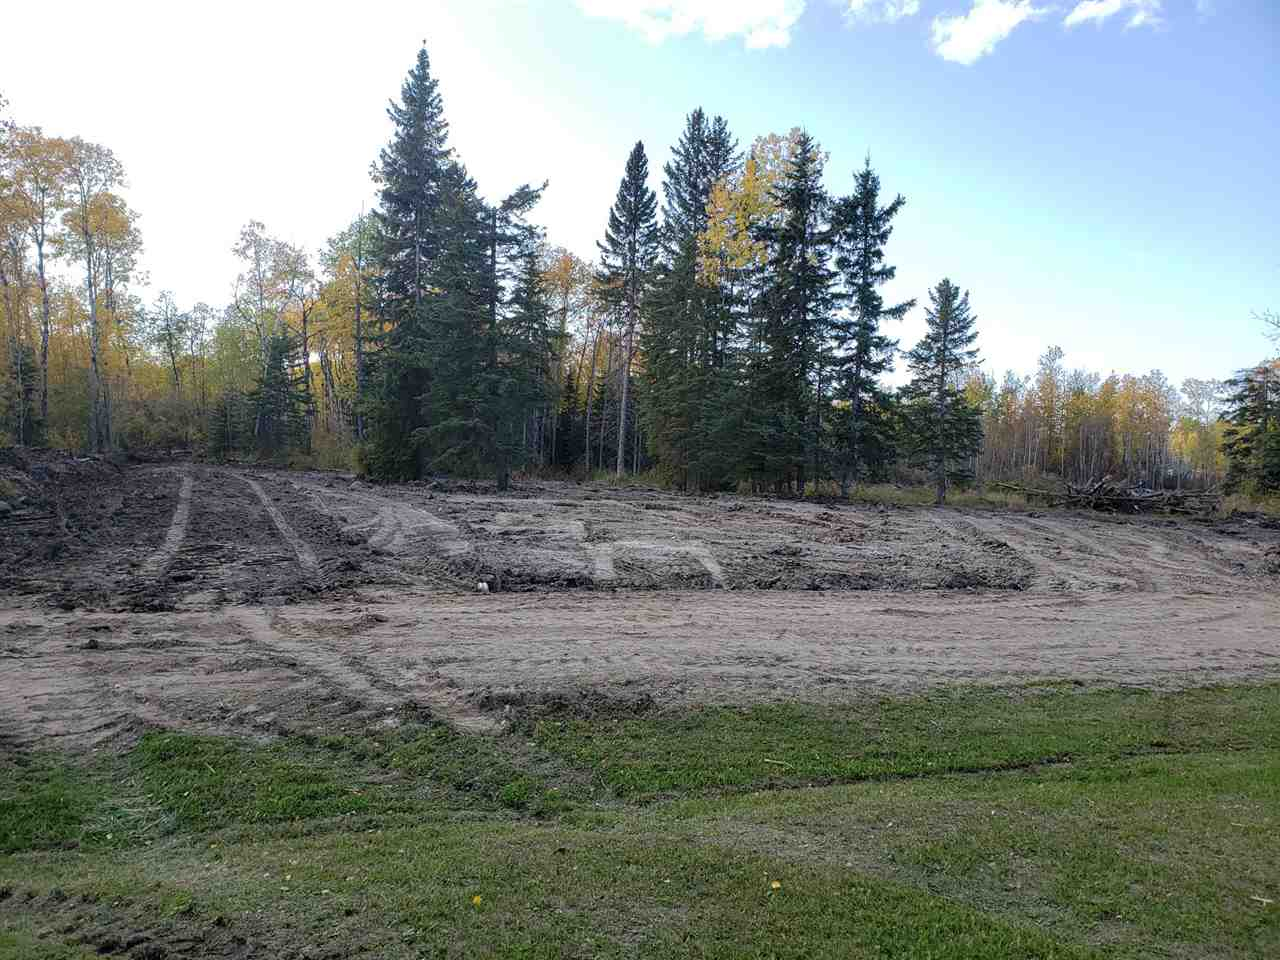 Awesome 3.58 acre lot situated just off HWY 55. Great location on the way to the oil patch, Cold Lake, and surrounding lakes. Perfect spot to build your dream home. This land is vacant, treed and un-serviced. Peace and quiet at the end of a dead end road. GST IS APPLICABLE!!!